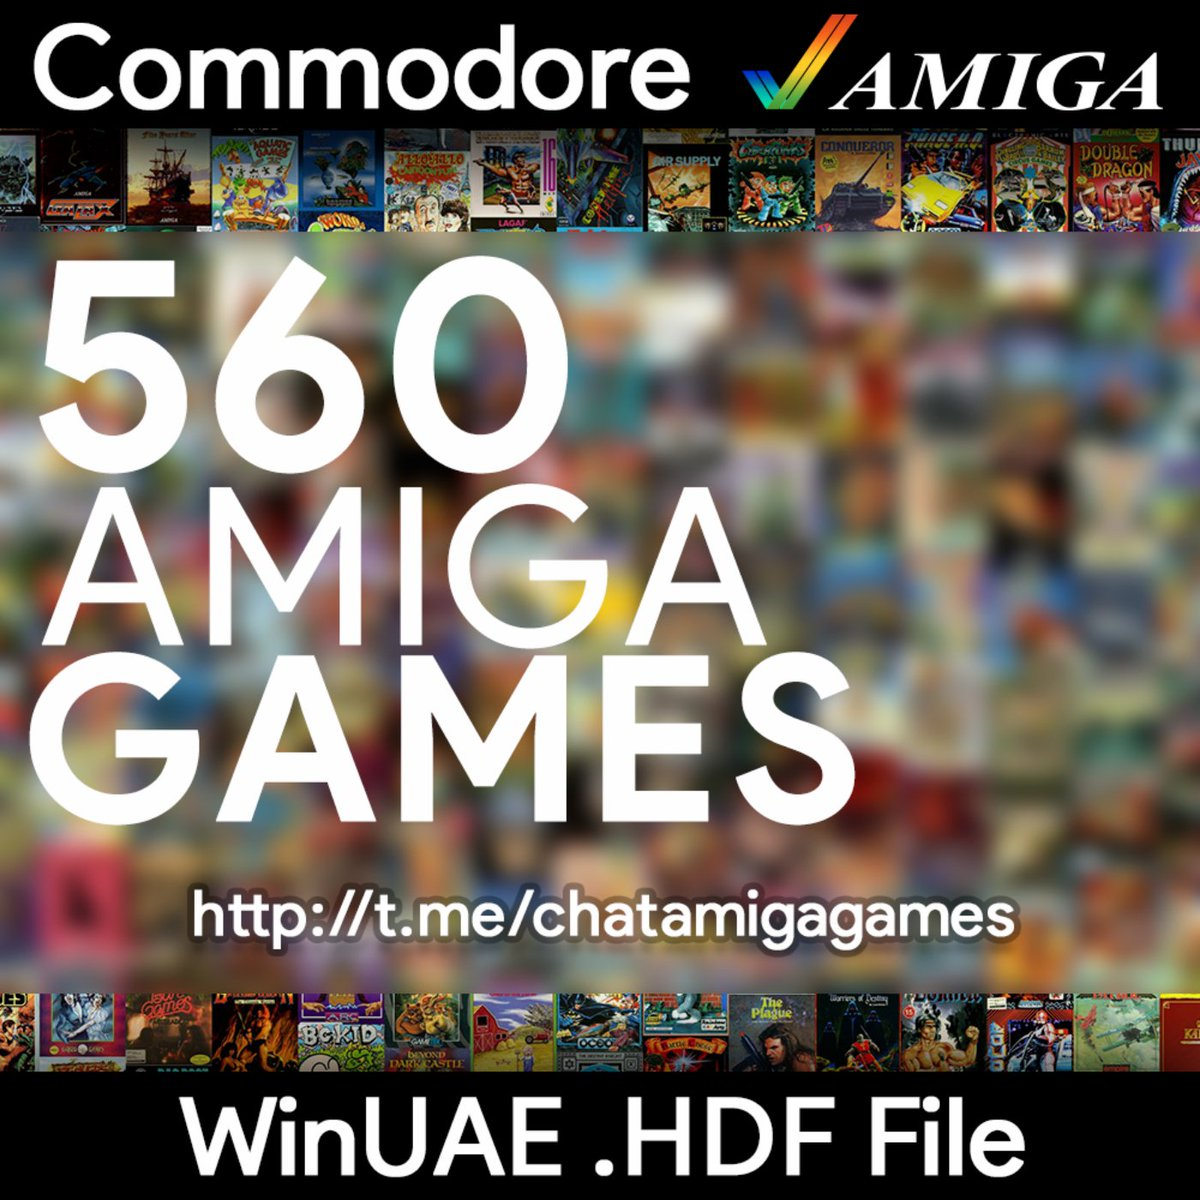 amigagames tagged Tweets and Download Twitter MP4 Videos | Twitur